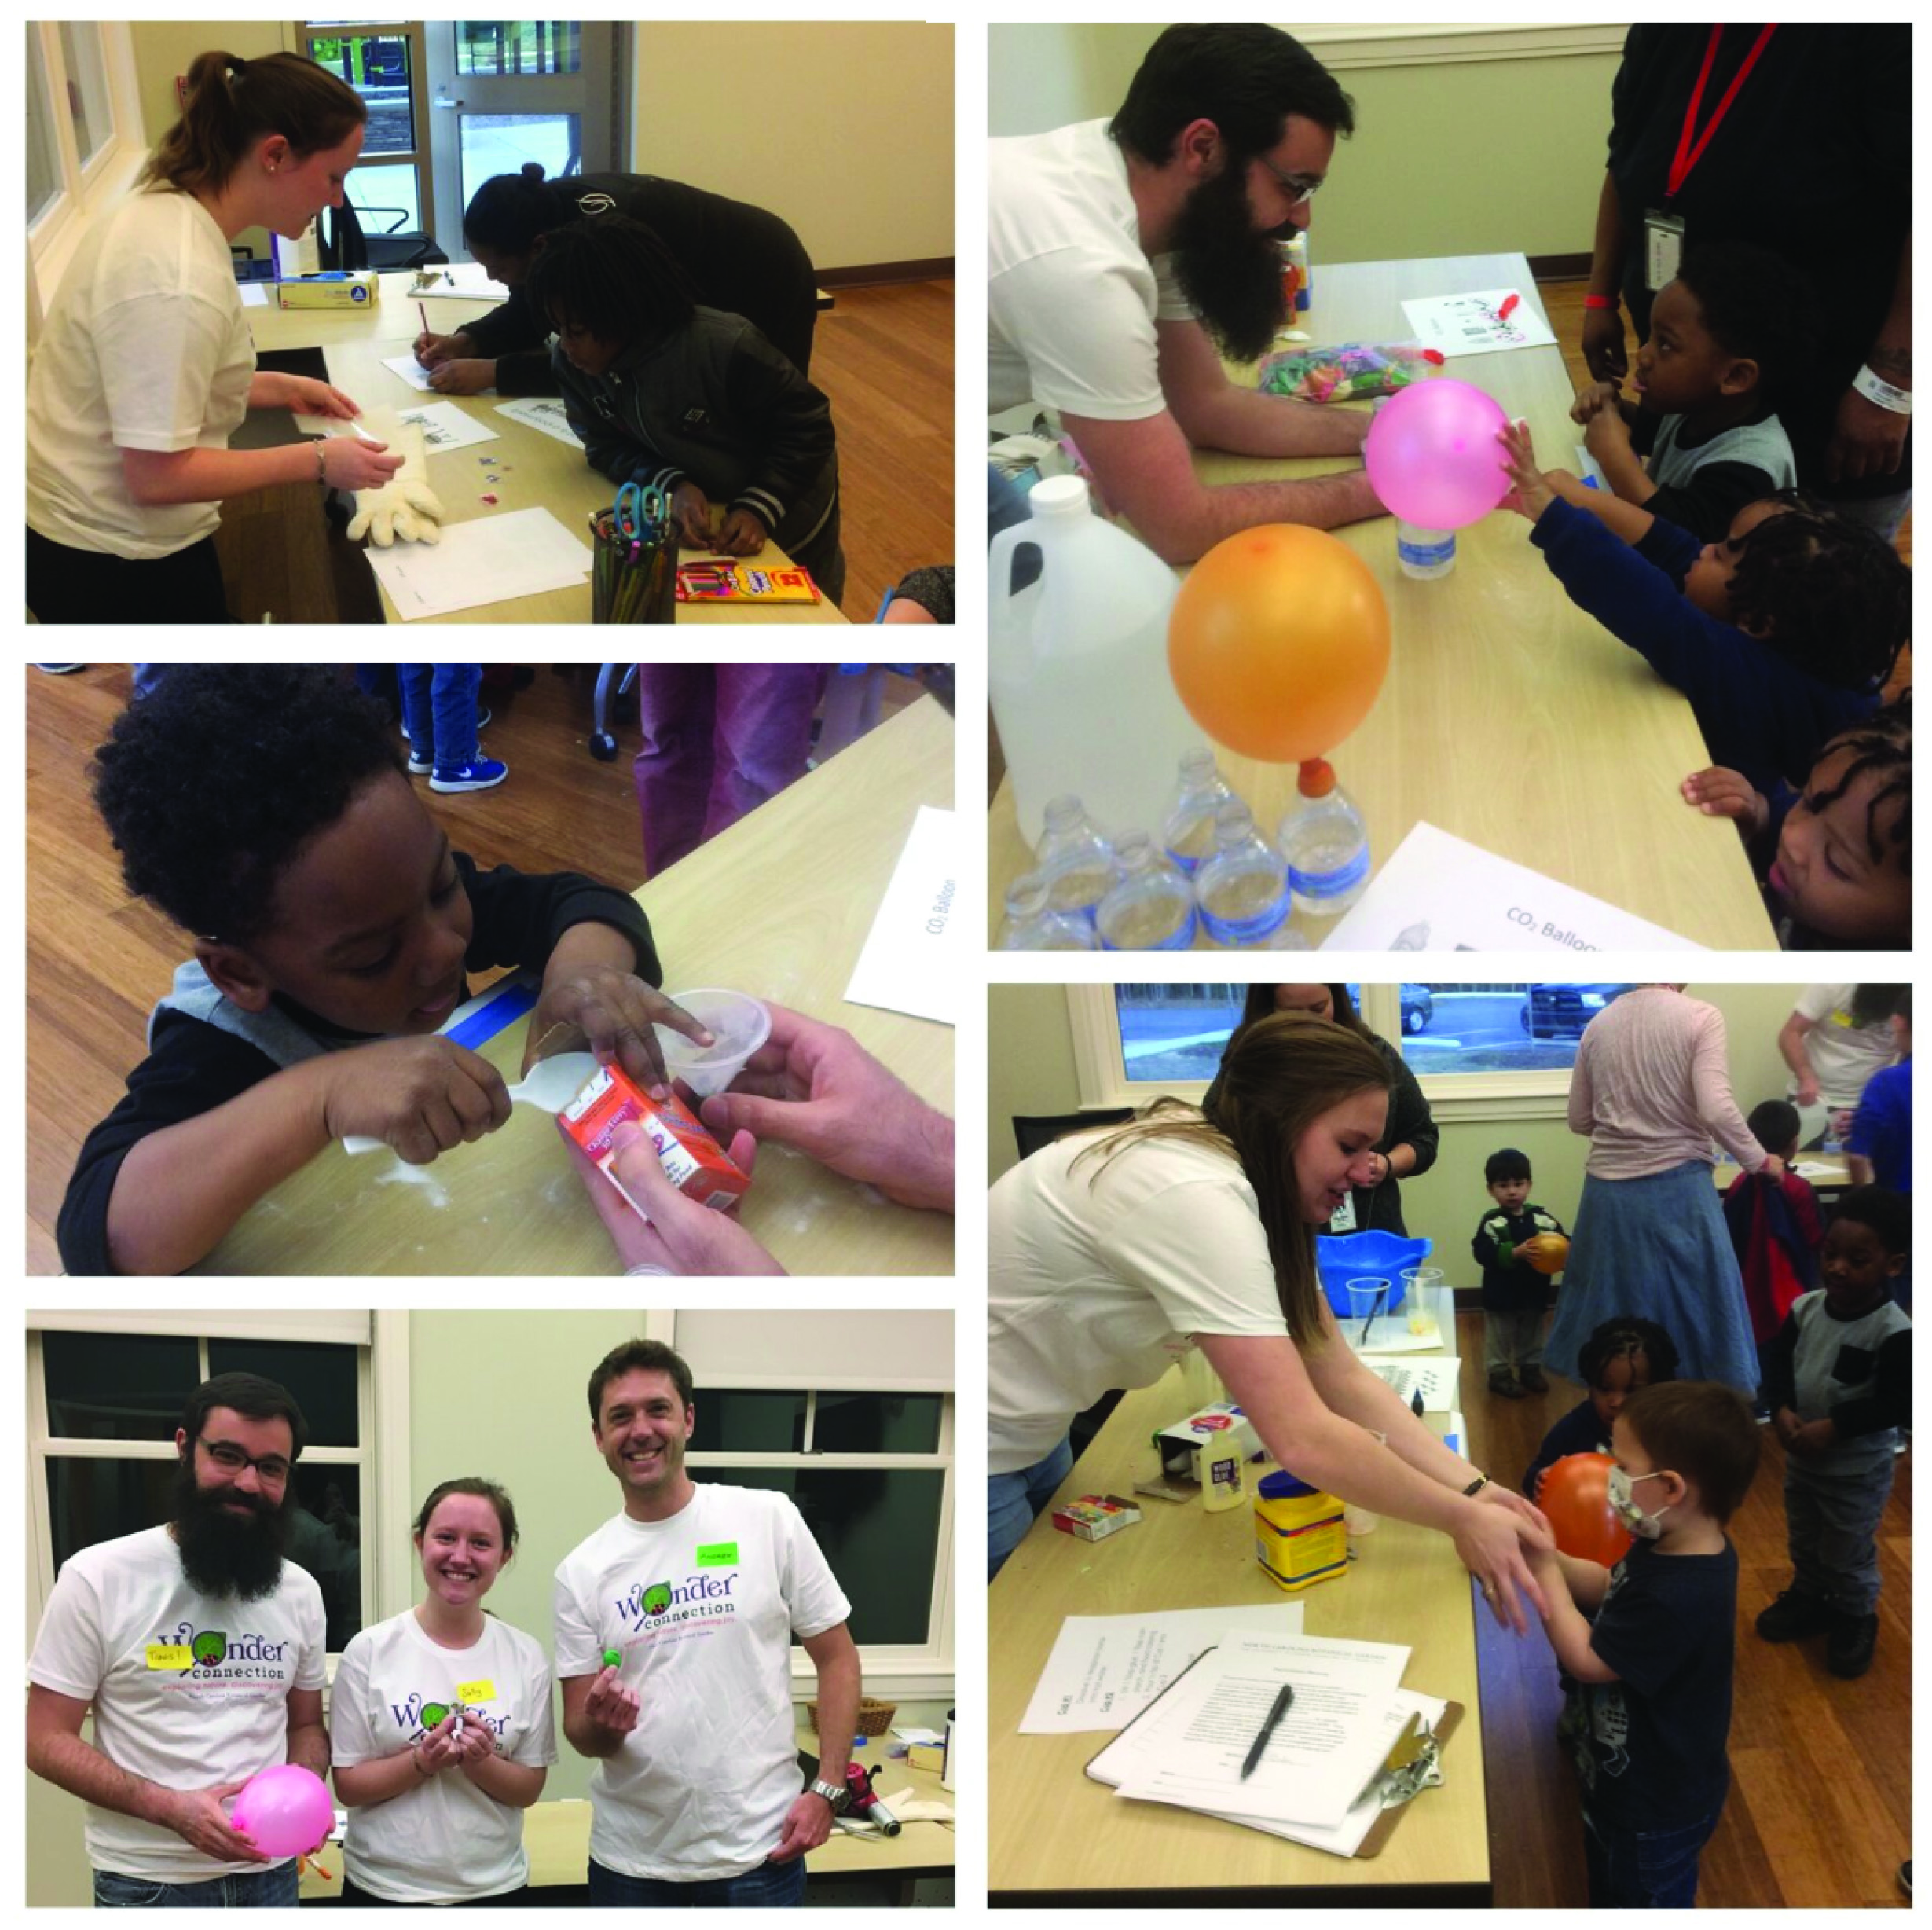 The Leibfarth group leading outreach activities at the UNC Ronald McDonald House